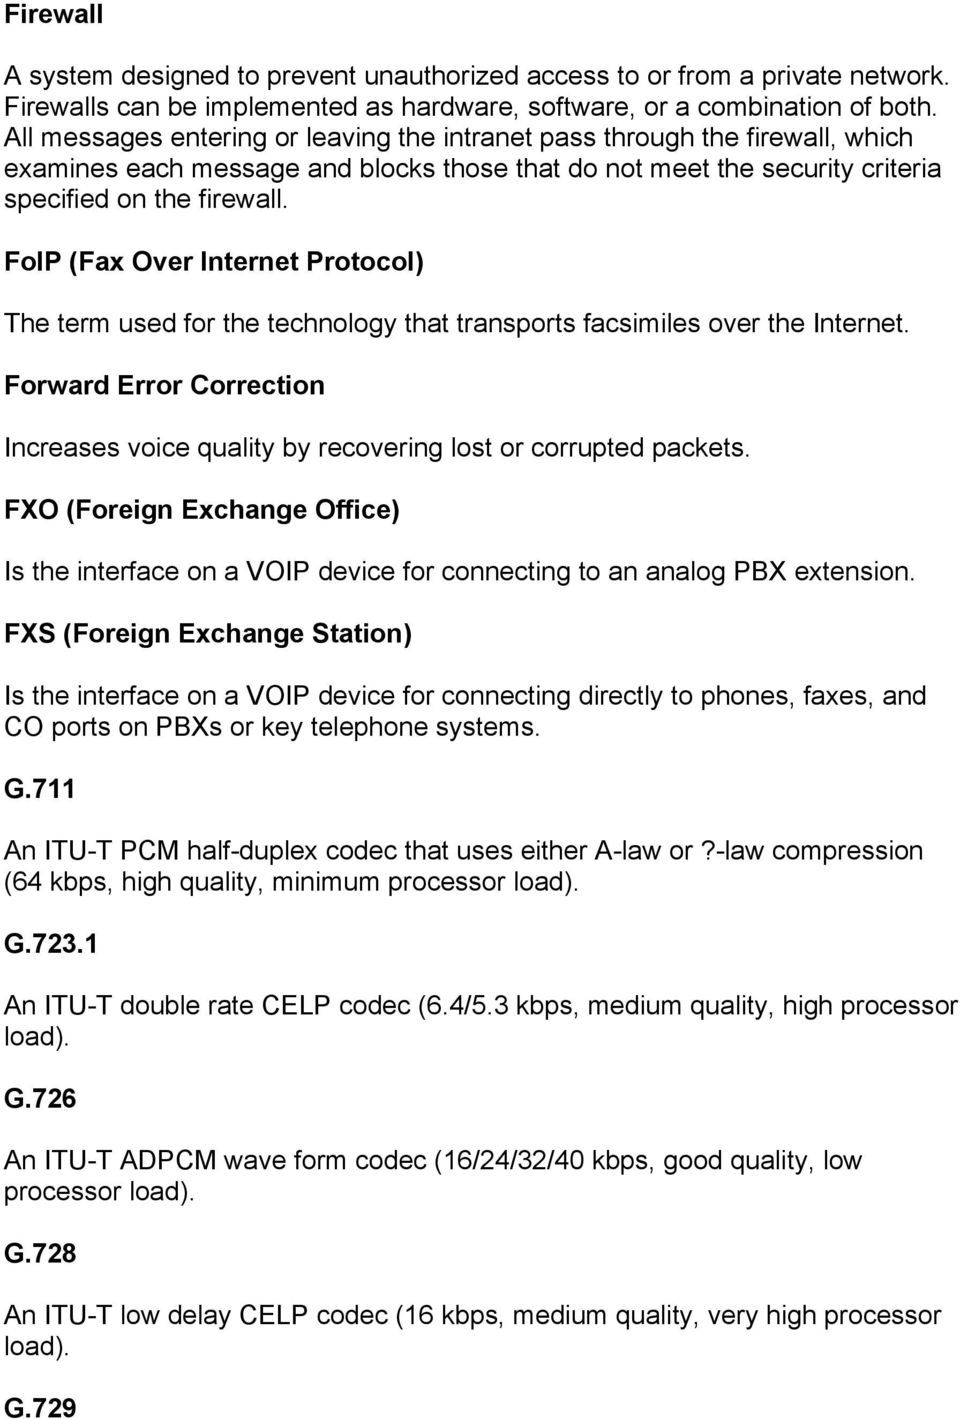 FoIP (Fax Over Internet Protocol) The term used for the technology that transports facsimiles over the Internet.